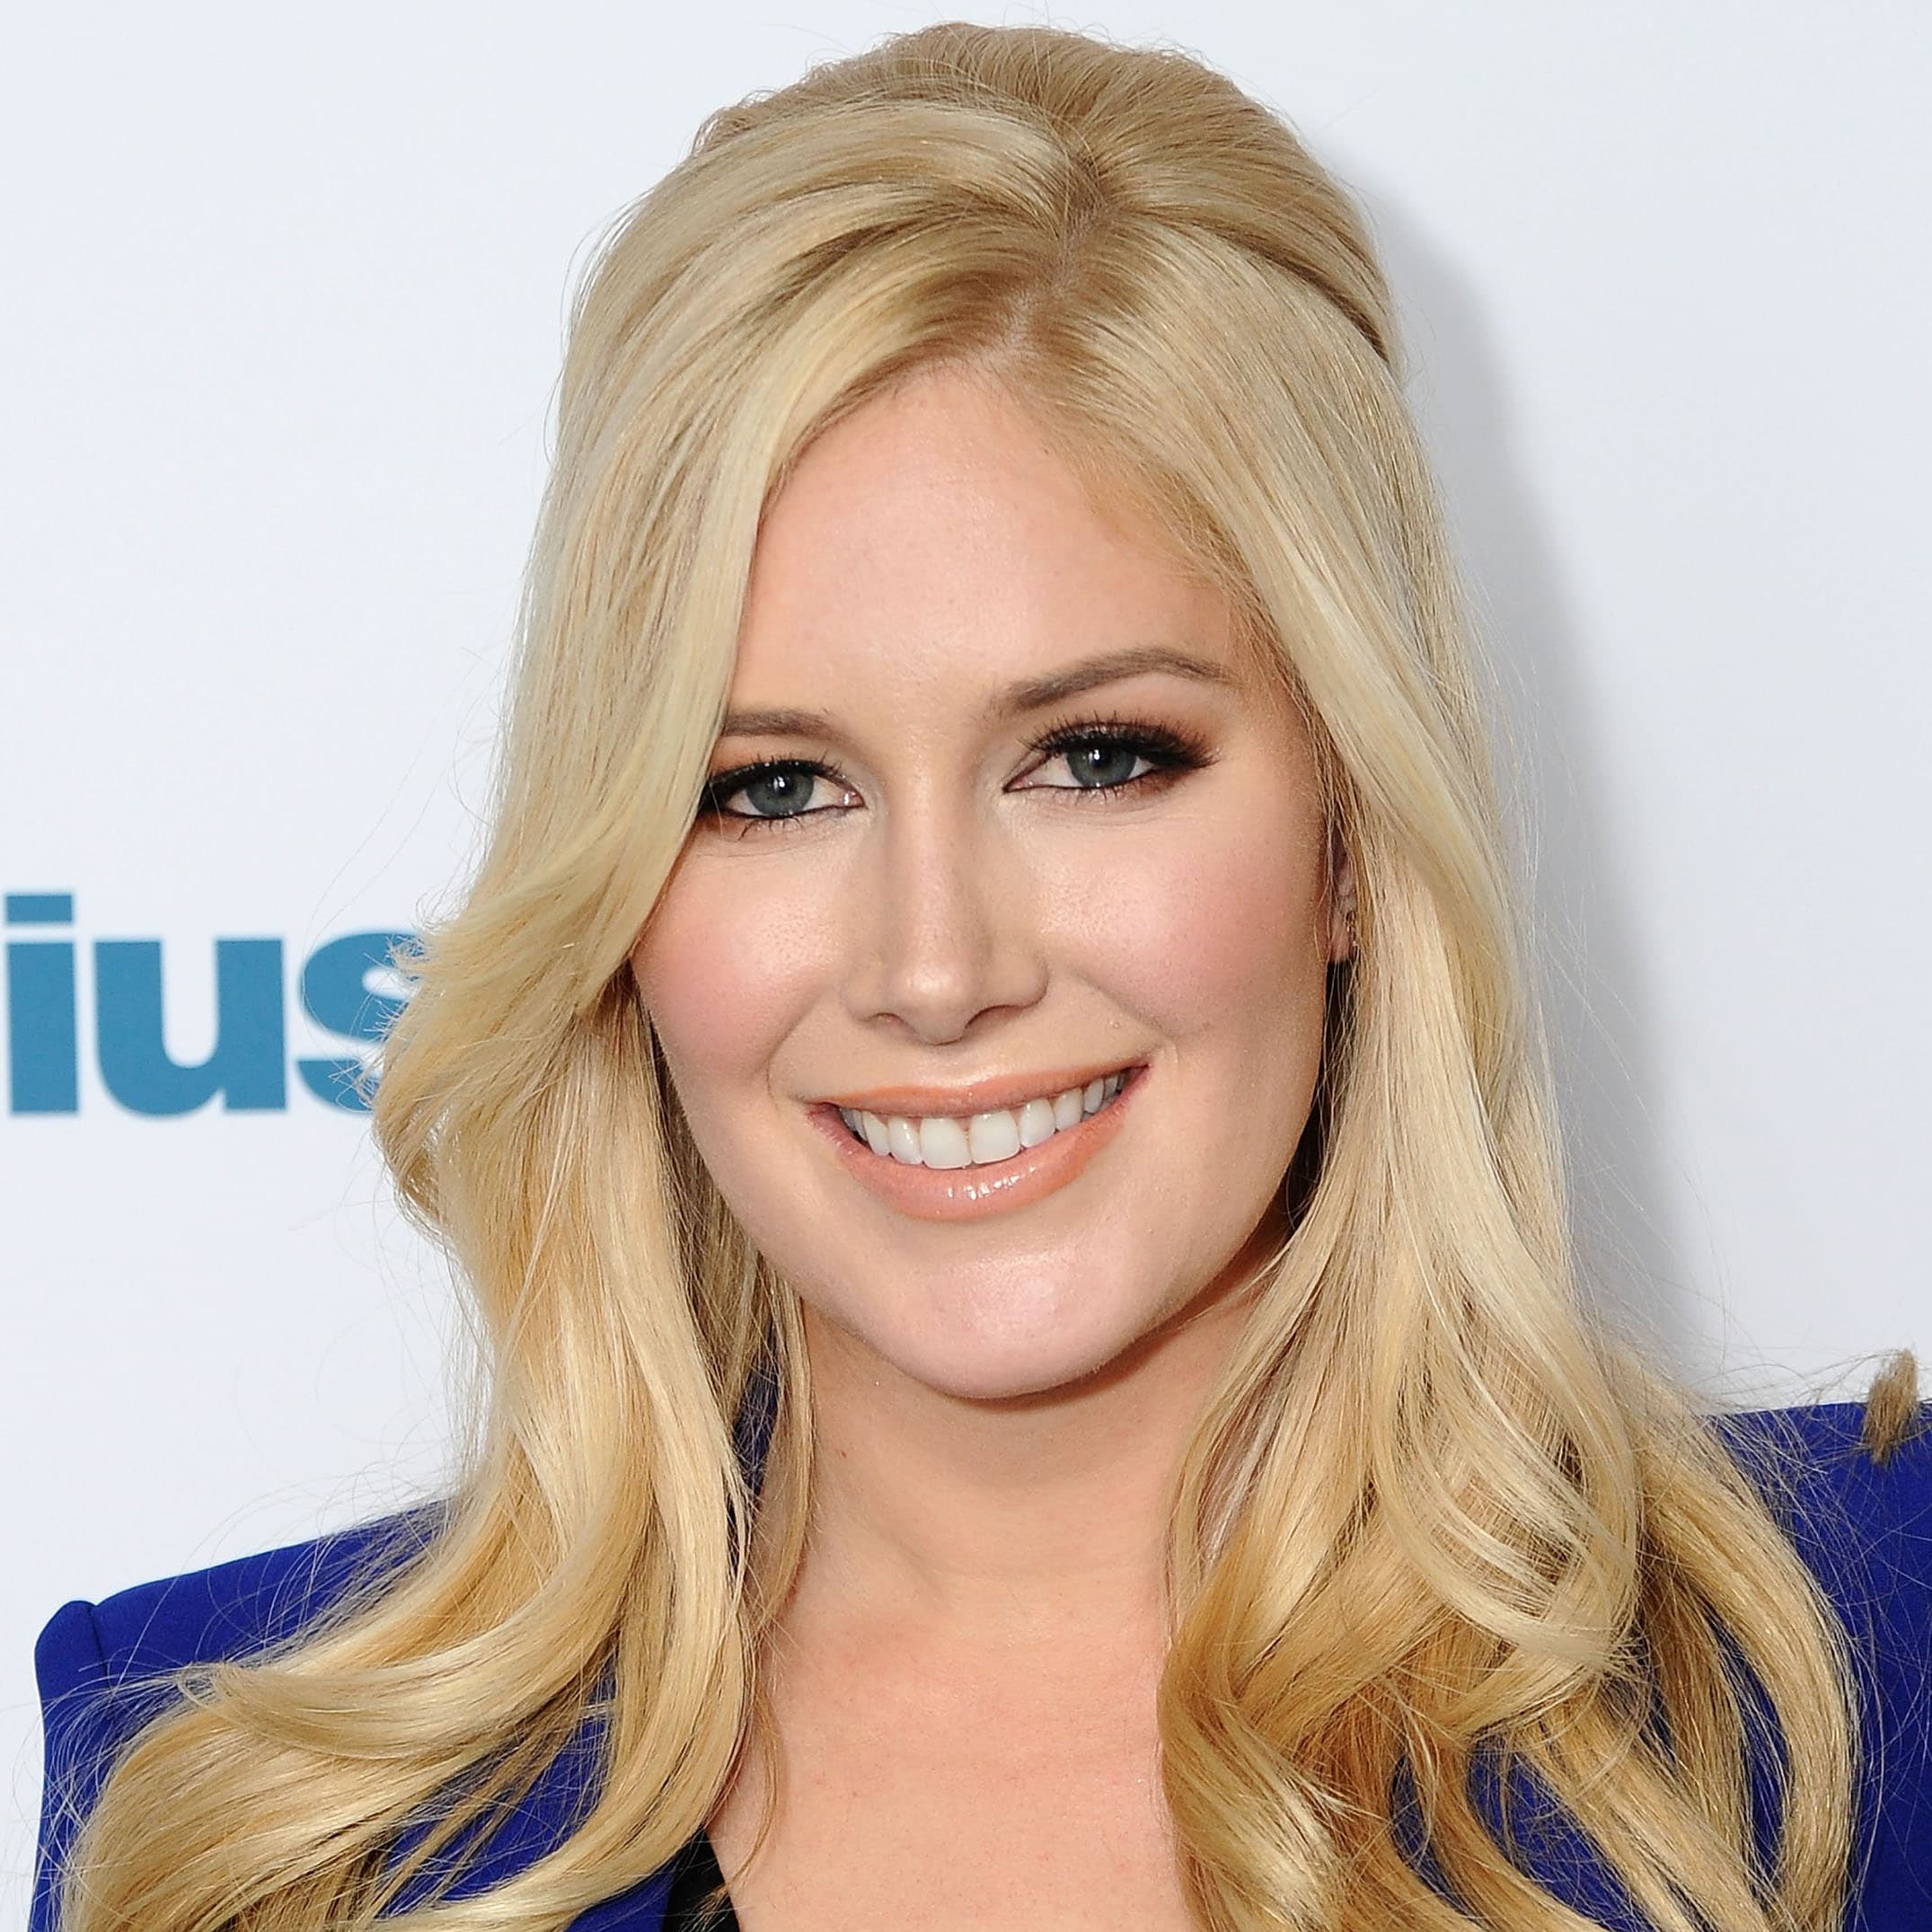 Heidi Montag Before After Plastic Surgery Pictures photo - 1